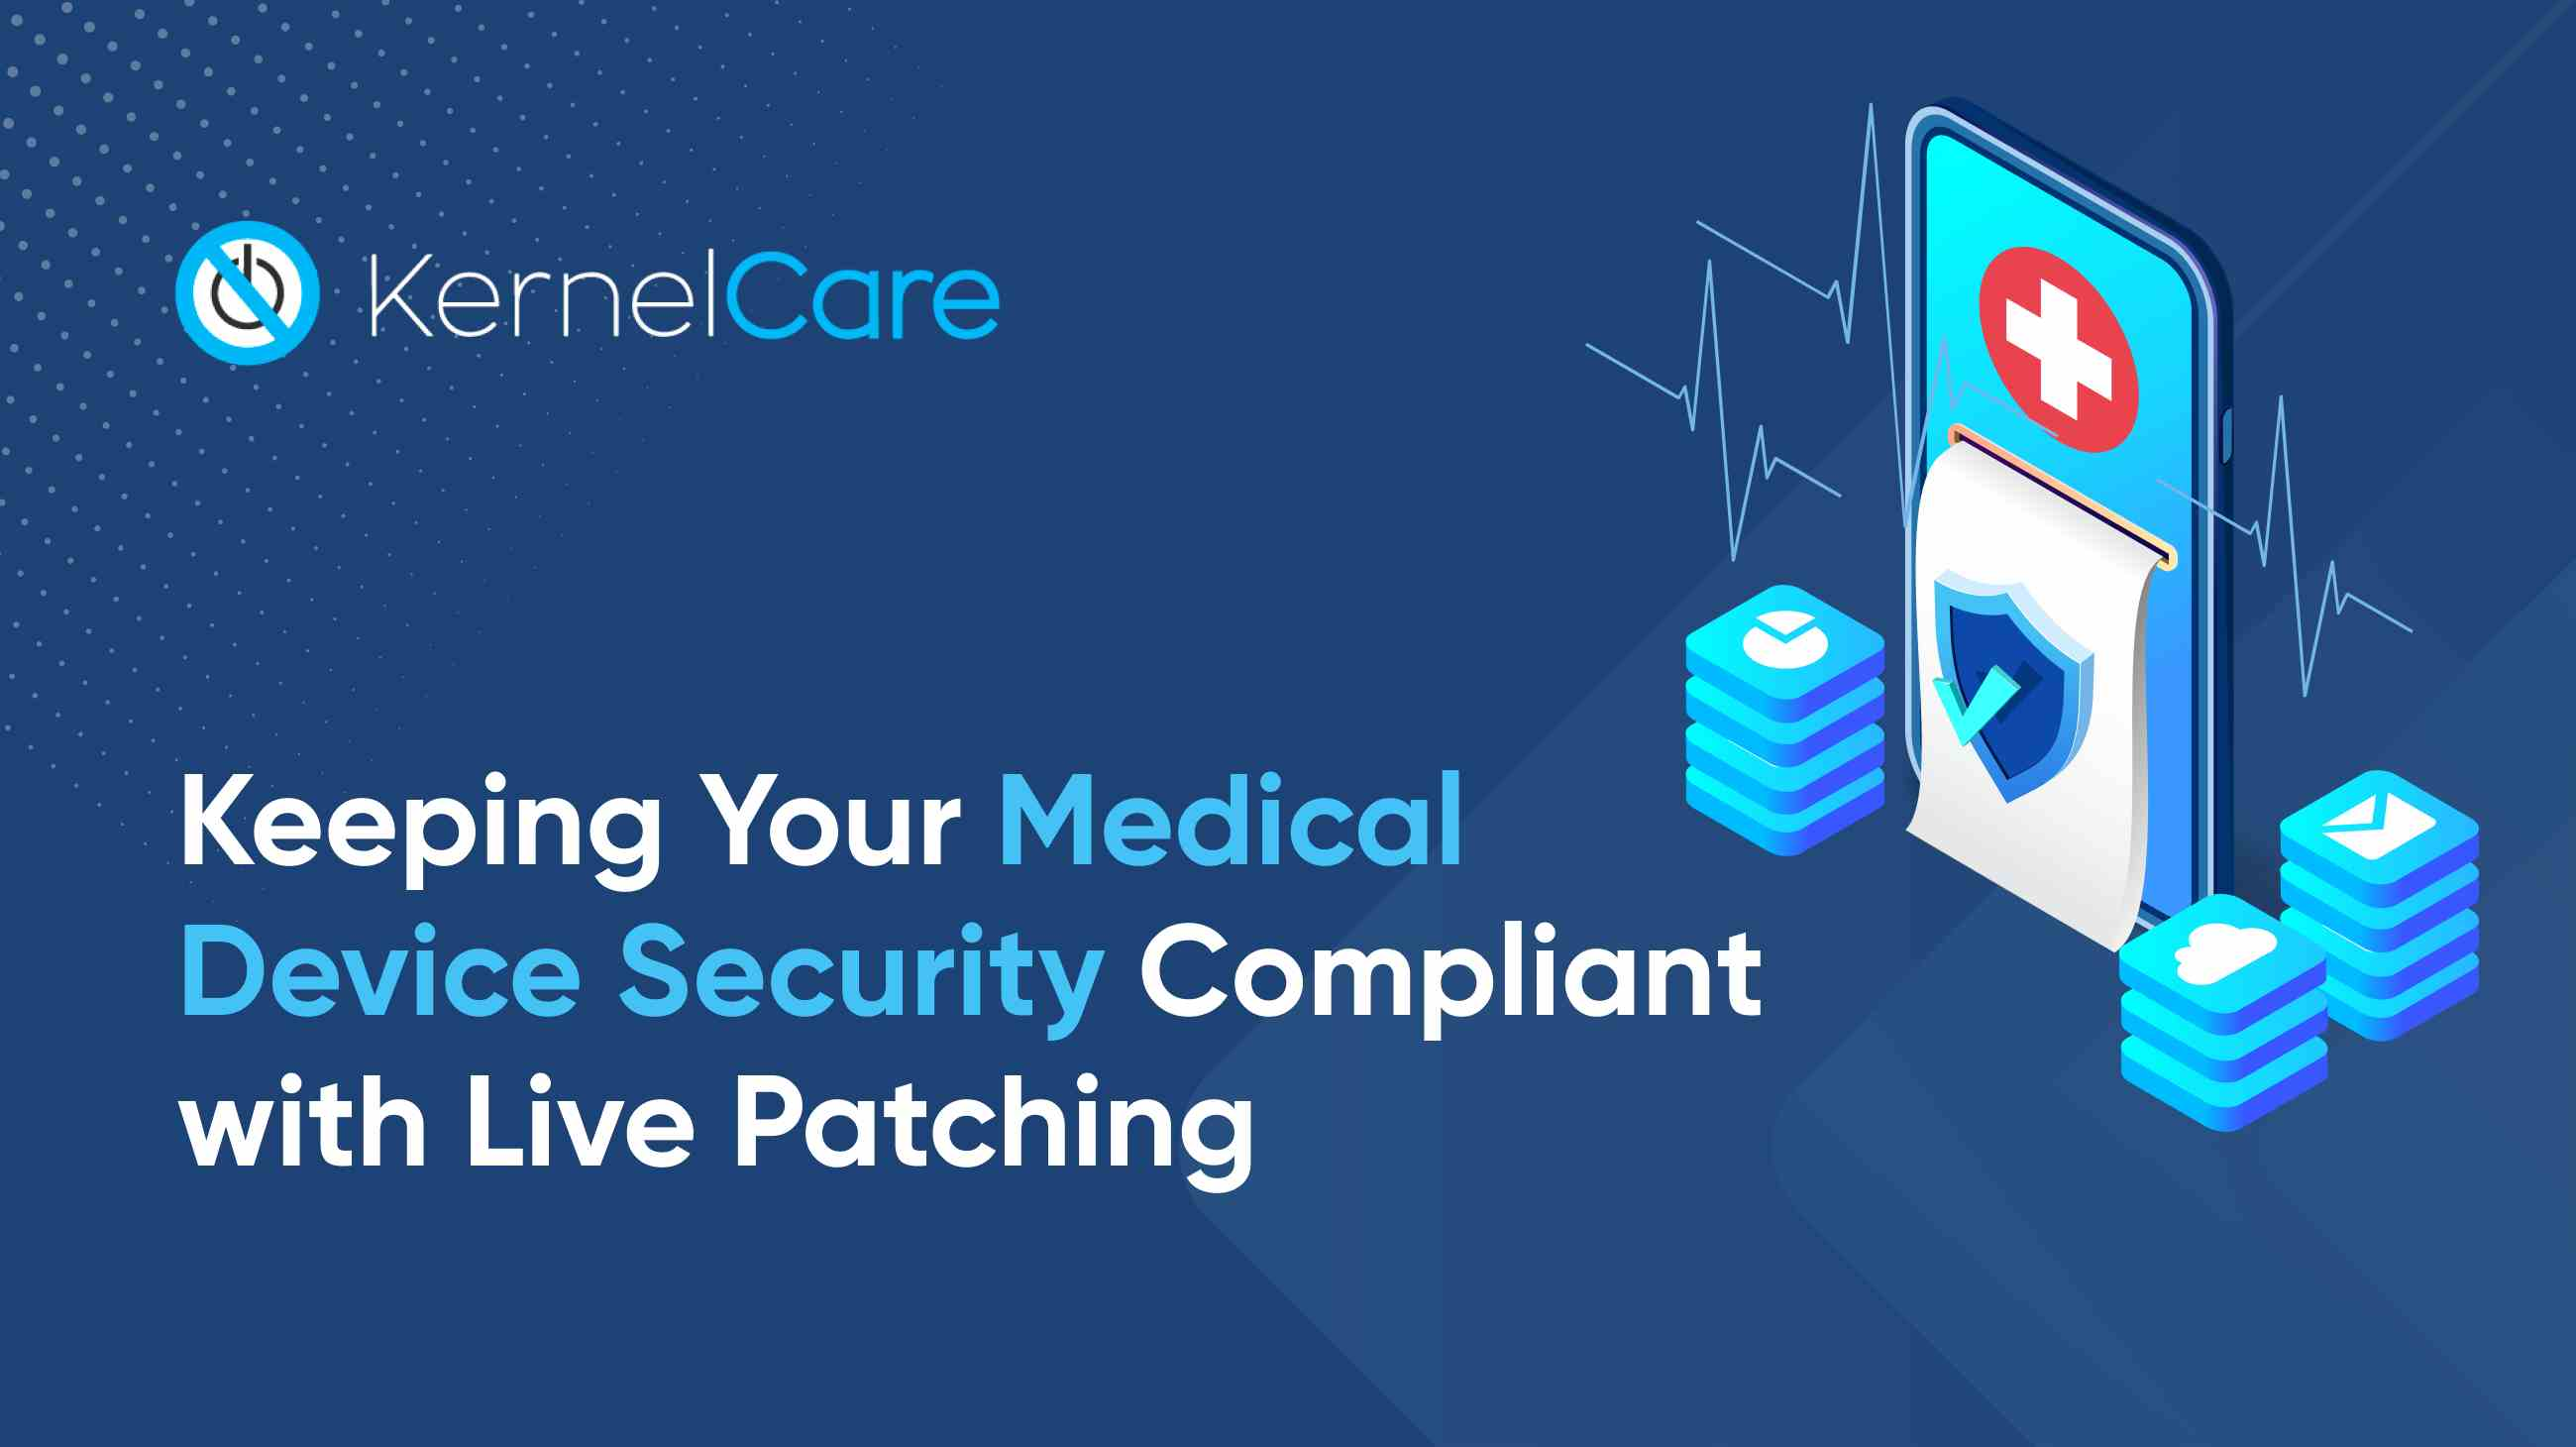 Keeping Your Medical Device Security Compliant with Live Patching